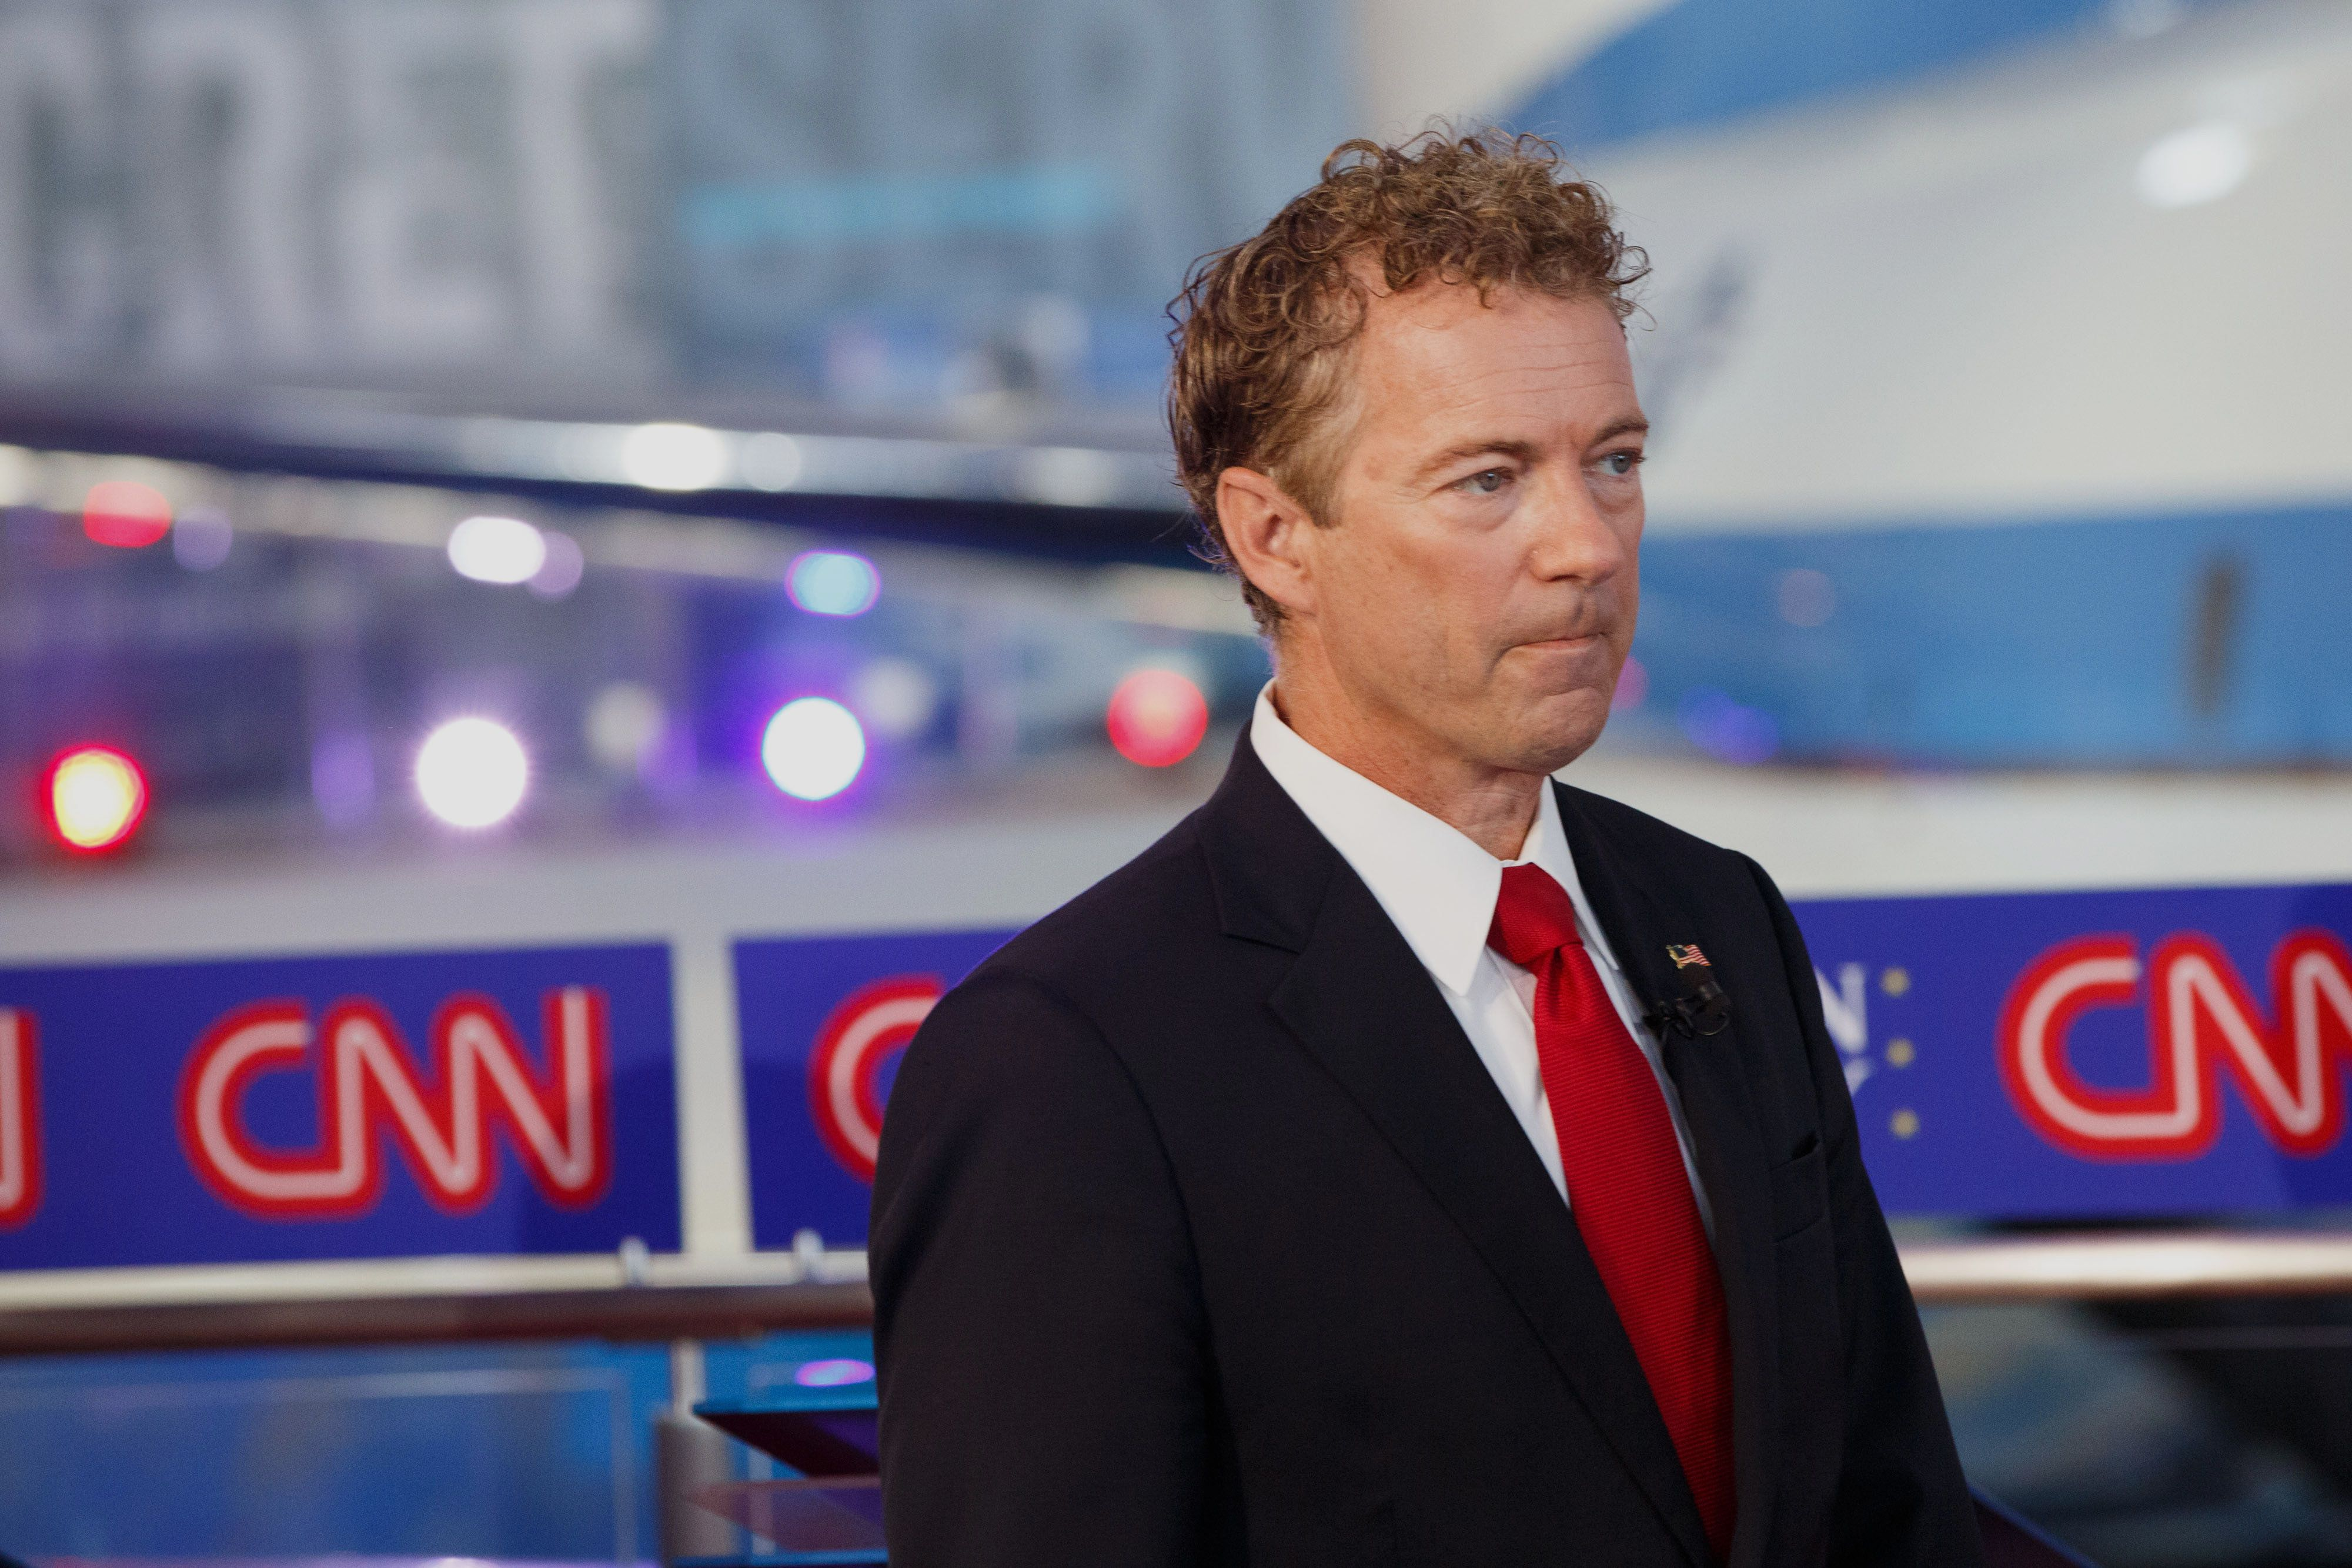 Senator Rand Paul, a Republican from Kentucky and 2016 presidential candidate, walks on stage during the Republican presidential debate at the Ronald Reagan Presidential Library in Simi Valley, California, U.S., on Wednesday, Sept. 16, 2015. The main debate of the top 11 GOP contenders in the polls follows the 'kids' table' debate of candidates who didn't make the cut. Photographer: Patrick T. Fallon/Bloomberg via Getty Images